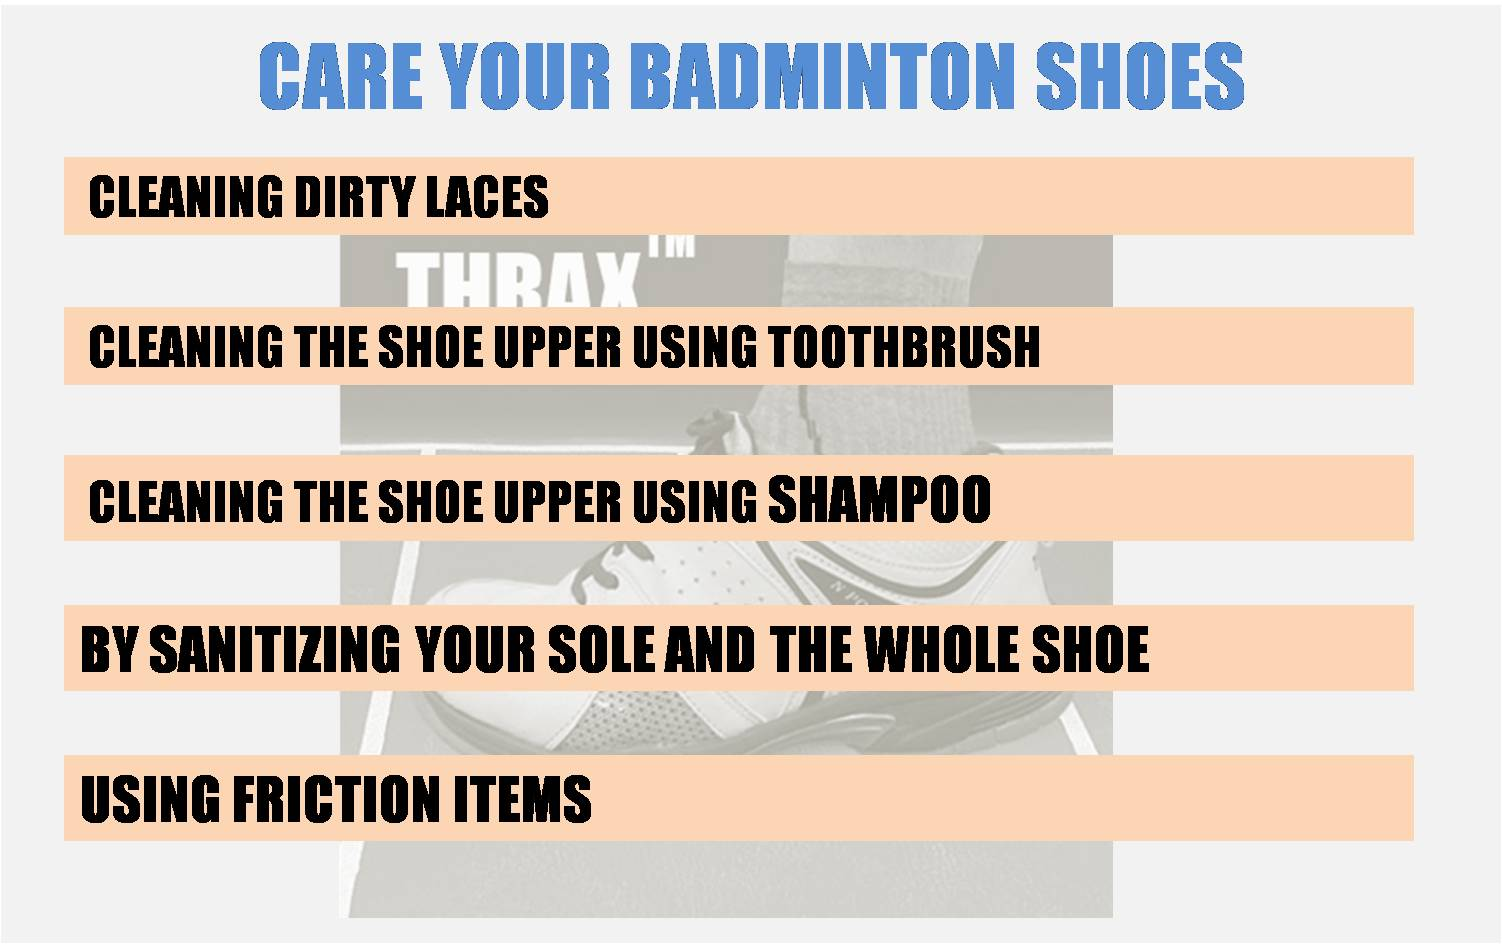 how_to_care_the_badminton_shoes_Important_Point_khelmart_Guide.jpg